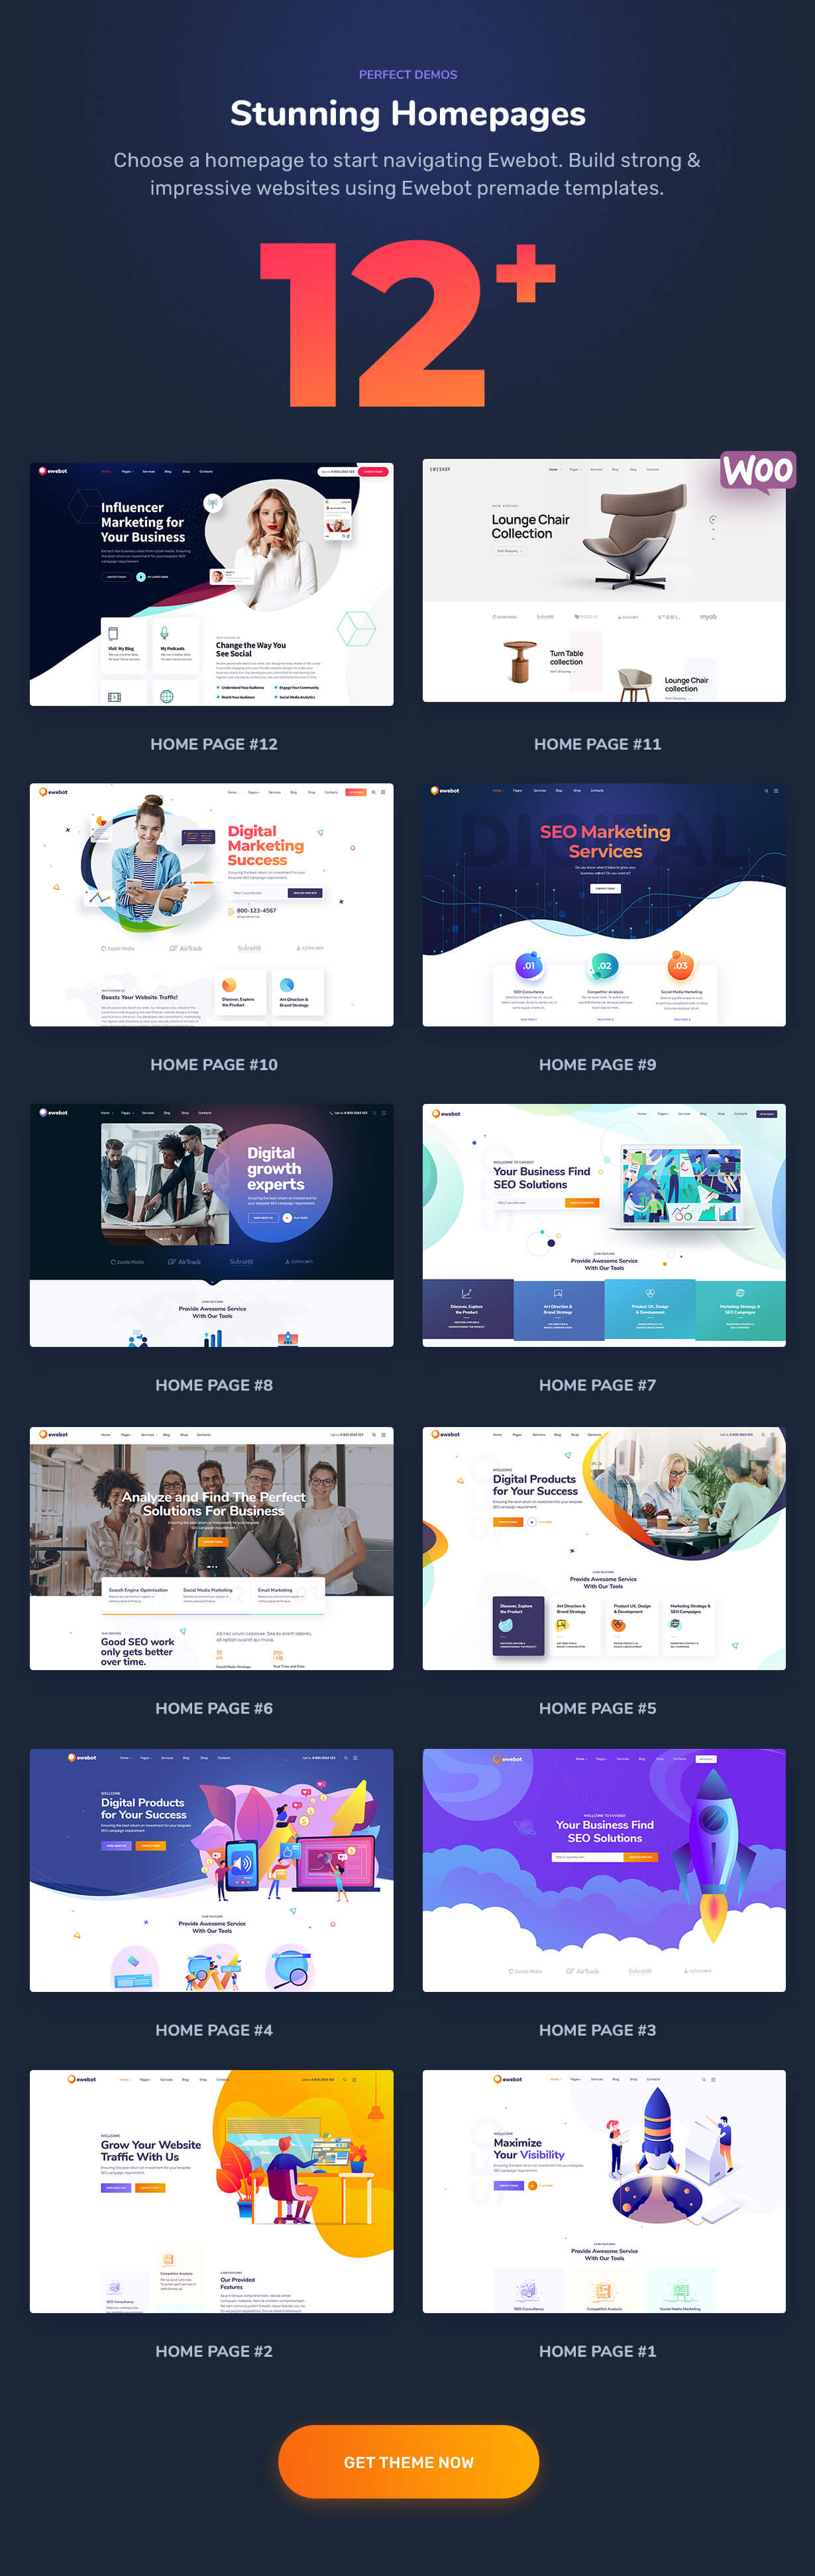 Ewebot - SEO and Marketing Agency WordPress Theme - 3